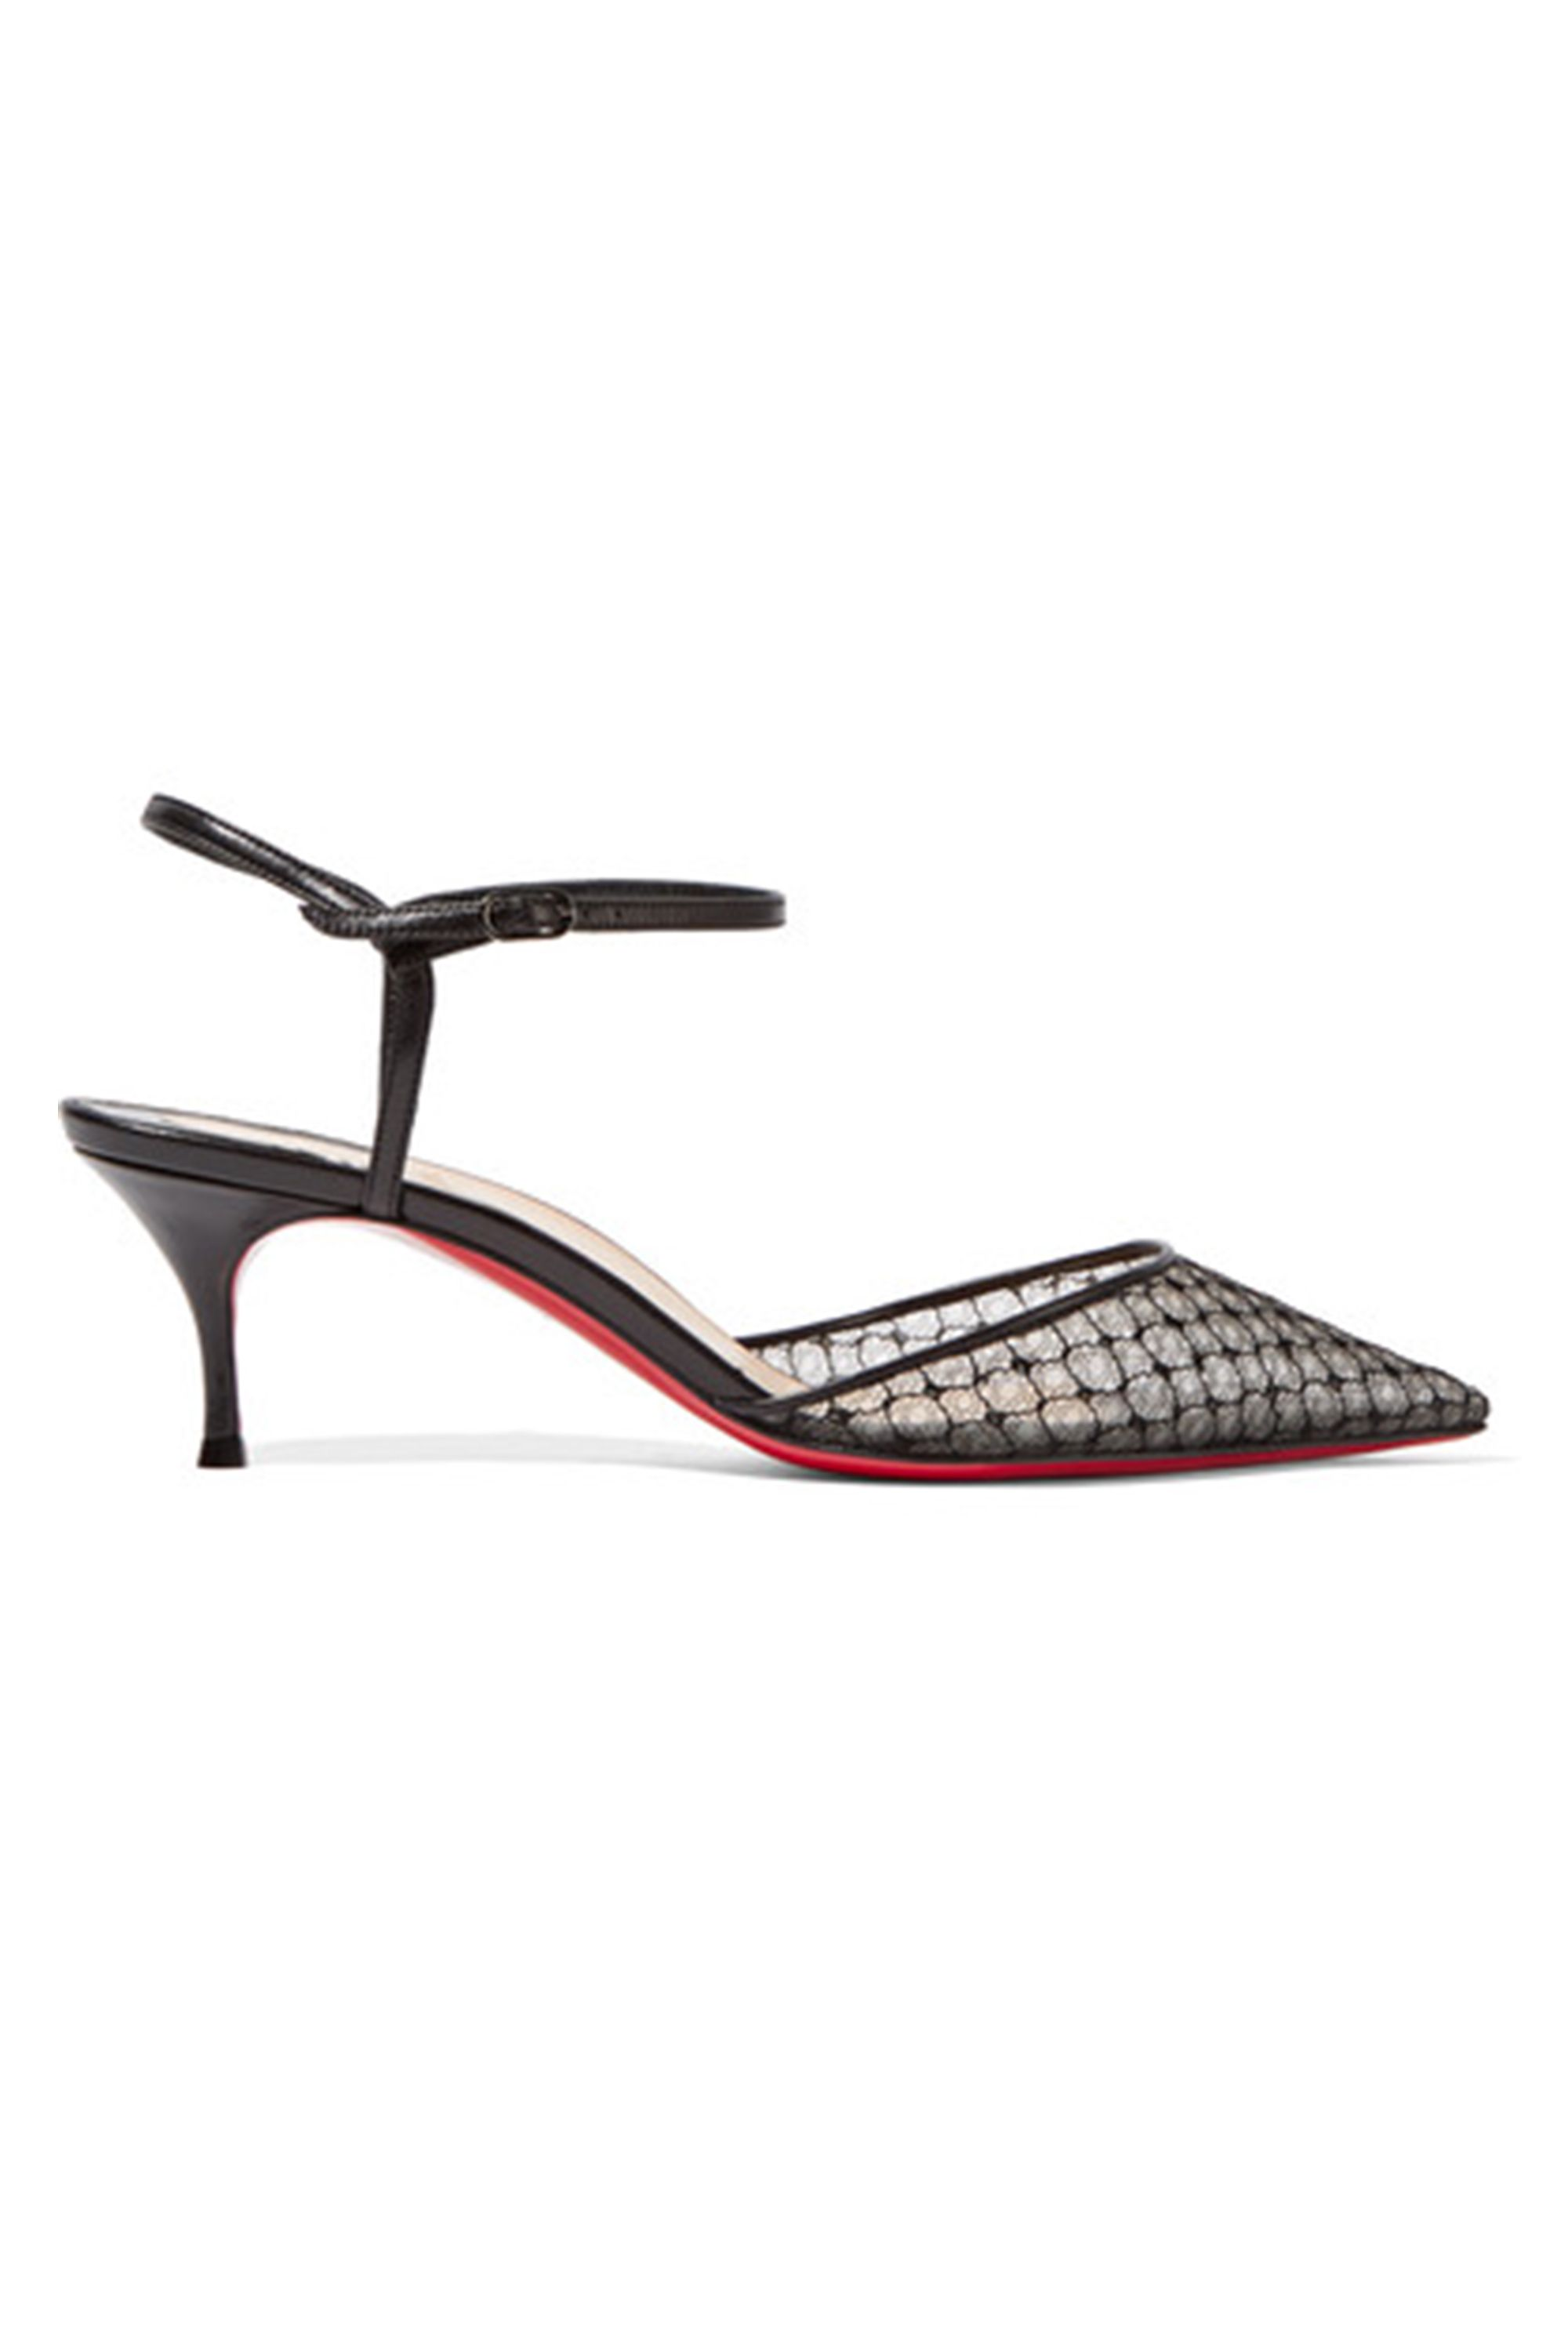 "<p> Christian Louboutin, Riverina<br> 55 leather-trimmed embroidered mesh pumps, $825, <a href=""https://www.net-a-porter.com/us/en/product/705077/Christian_Louboutin/riverina-55-leather-trimmed-embroidered-mesh-pumps"">net-a-porter.com</a></p><p><span class=""redactor-invisible-space"" data-verified=""redactor"" data-redactor-tag=""span"" data-redactor-class=""redactor-invisible-space""></span></p>"